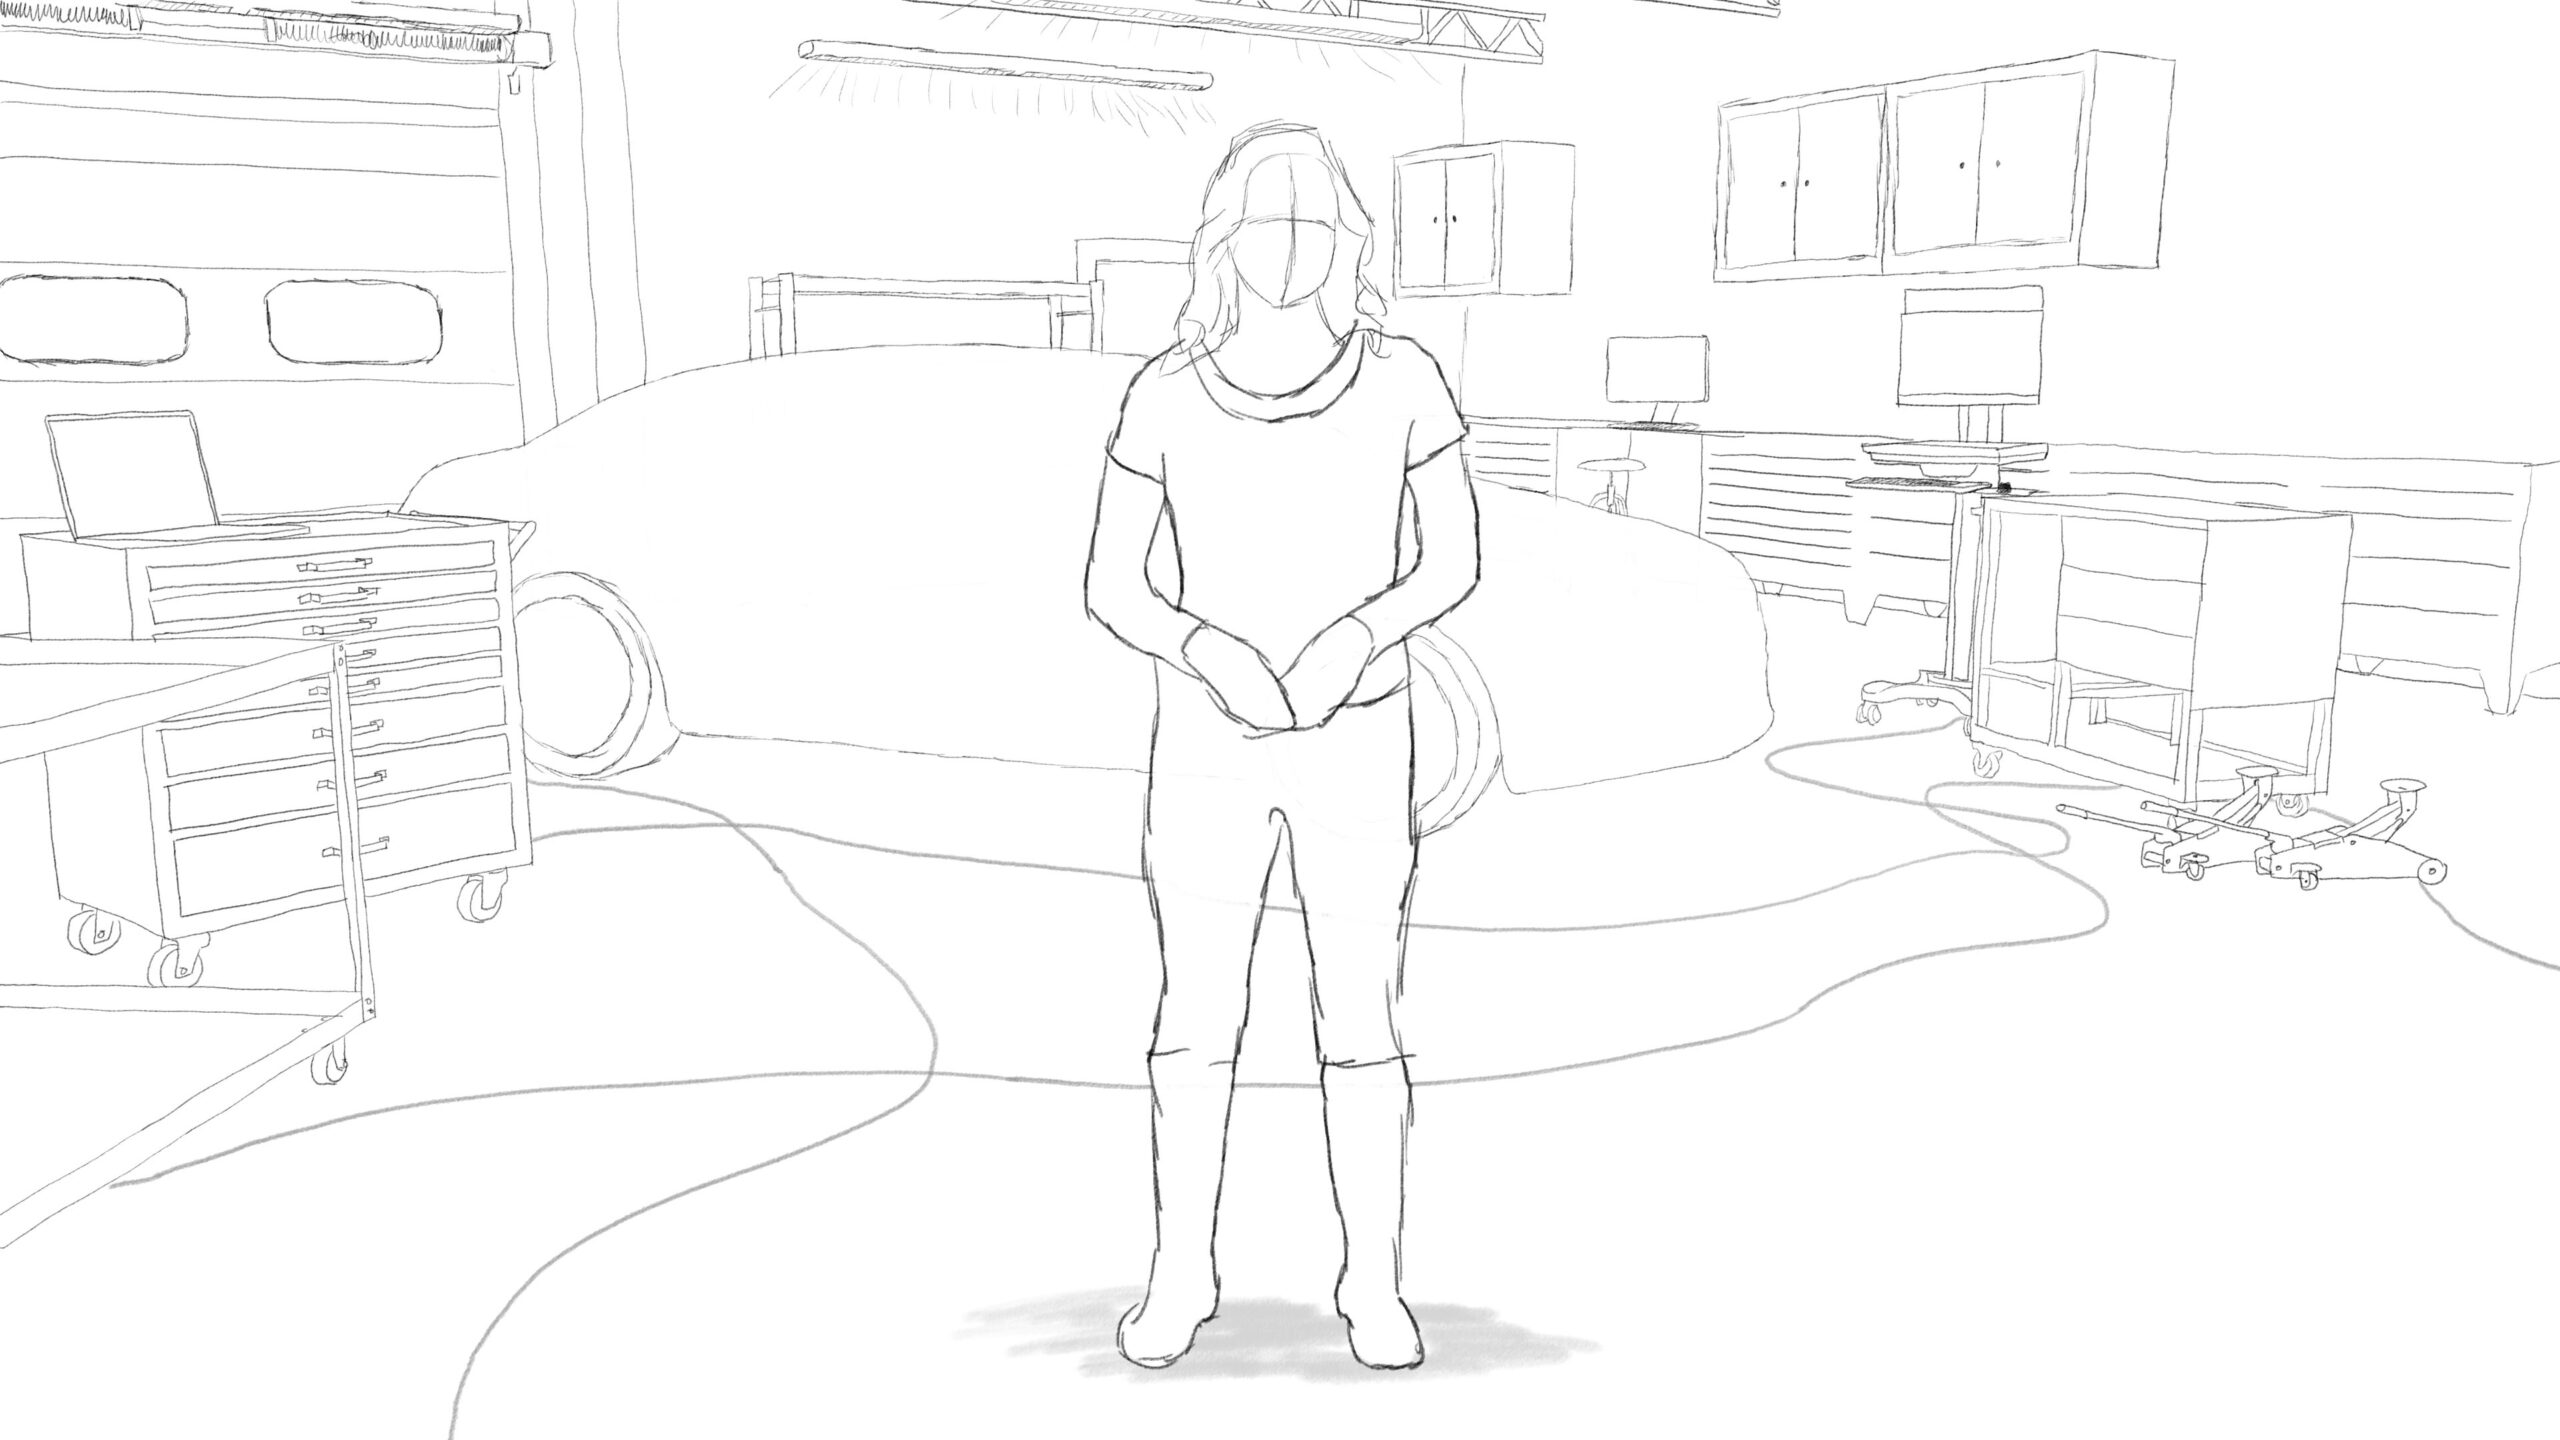 Pitney Bowes-RumbleOn concept art - main, wide-view drawing of a garage with a person standing in front of a car